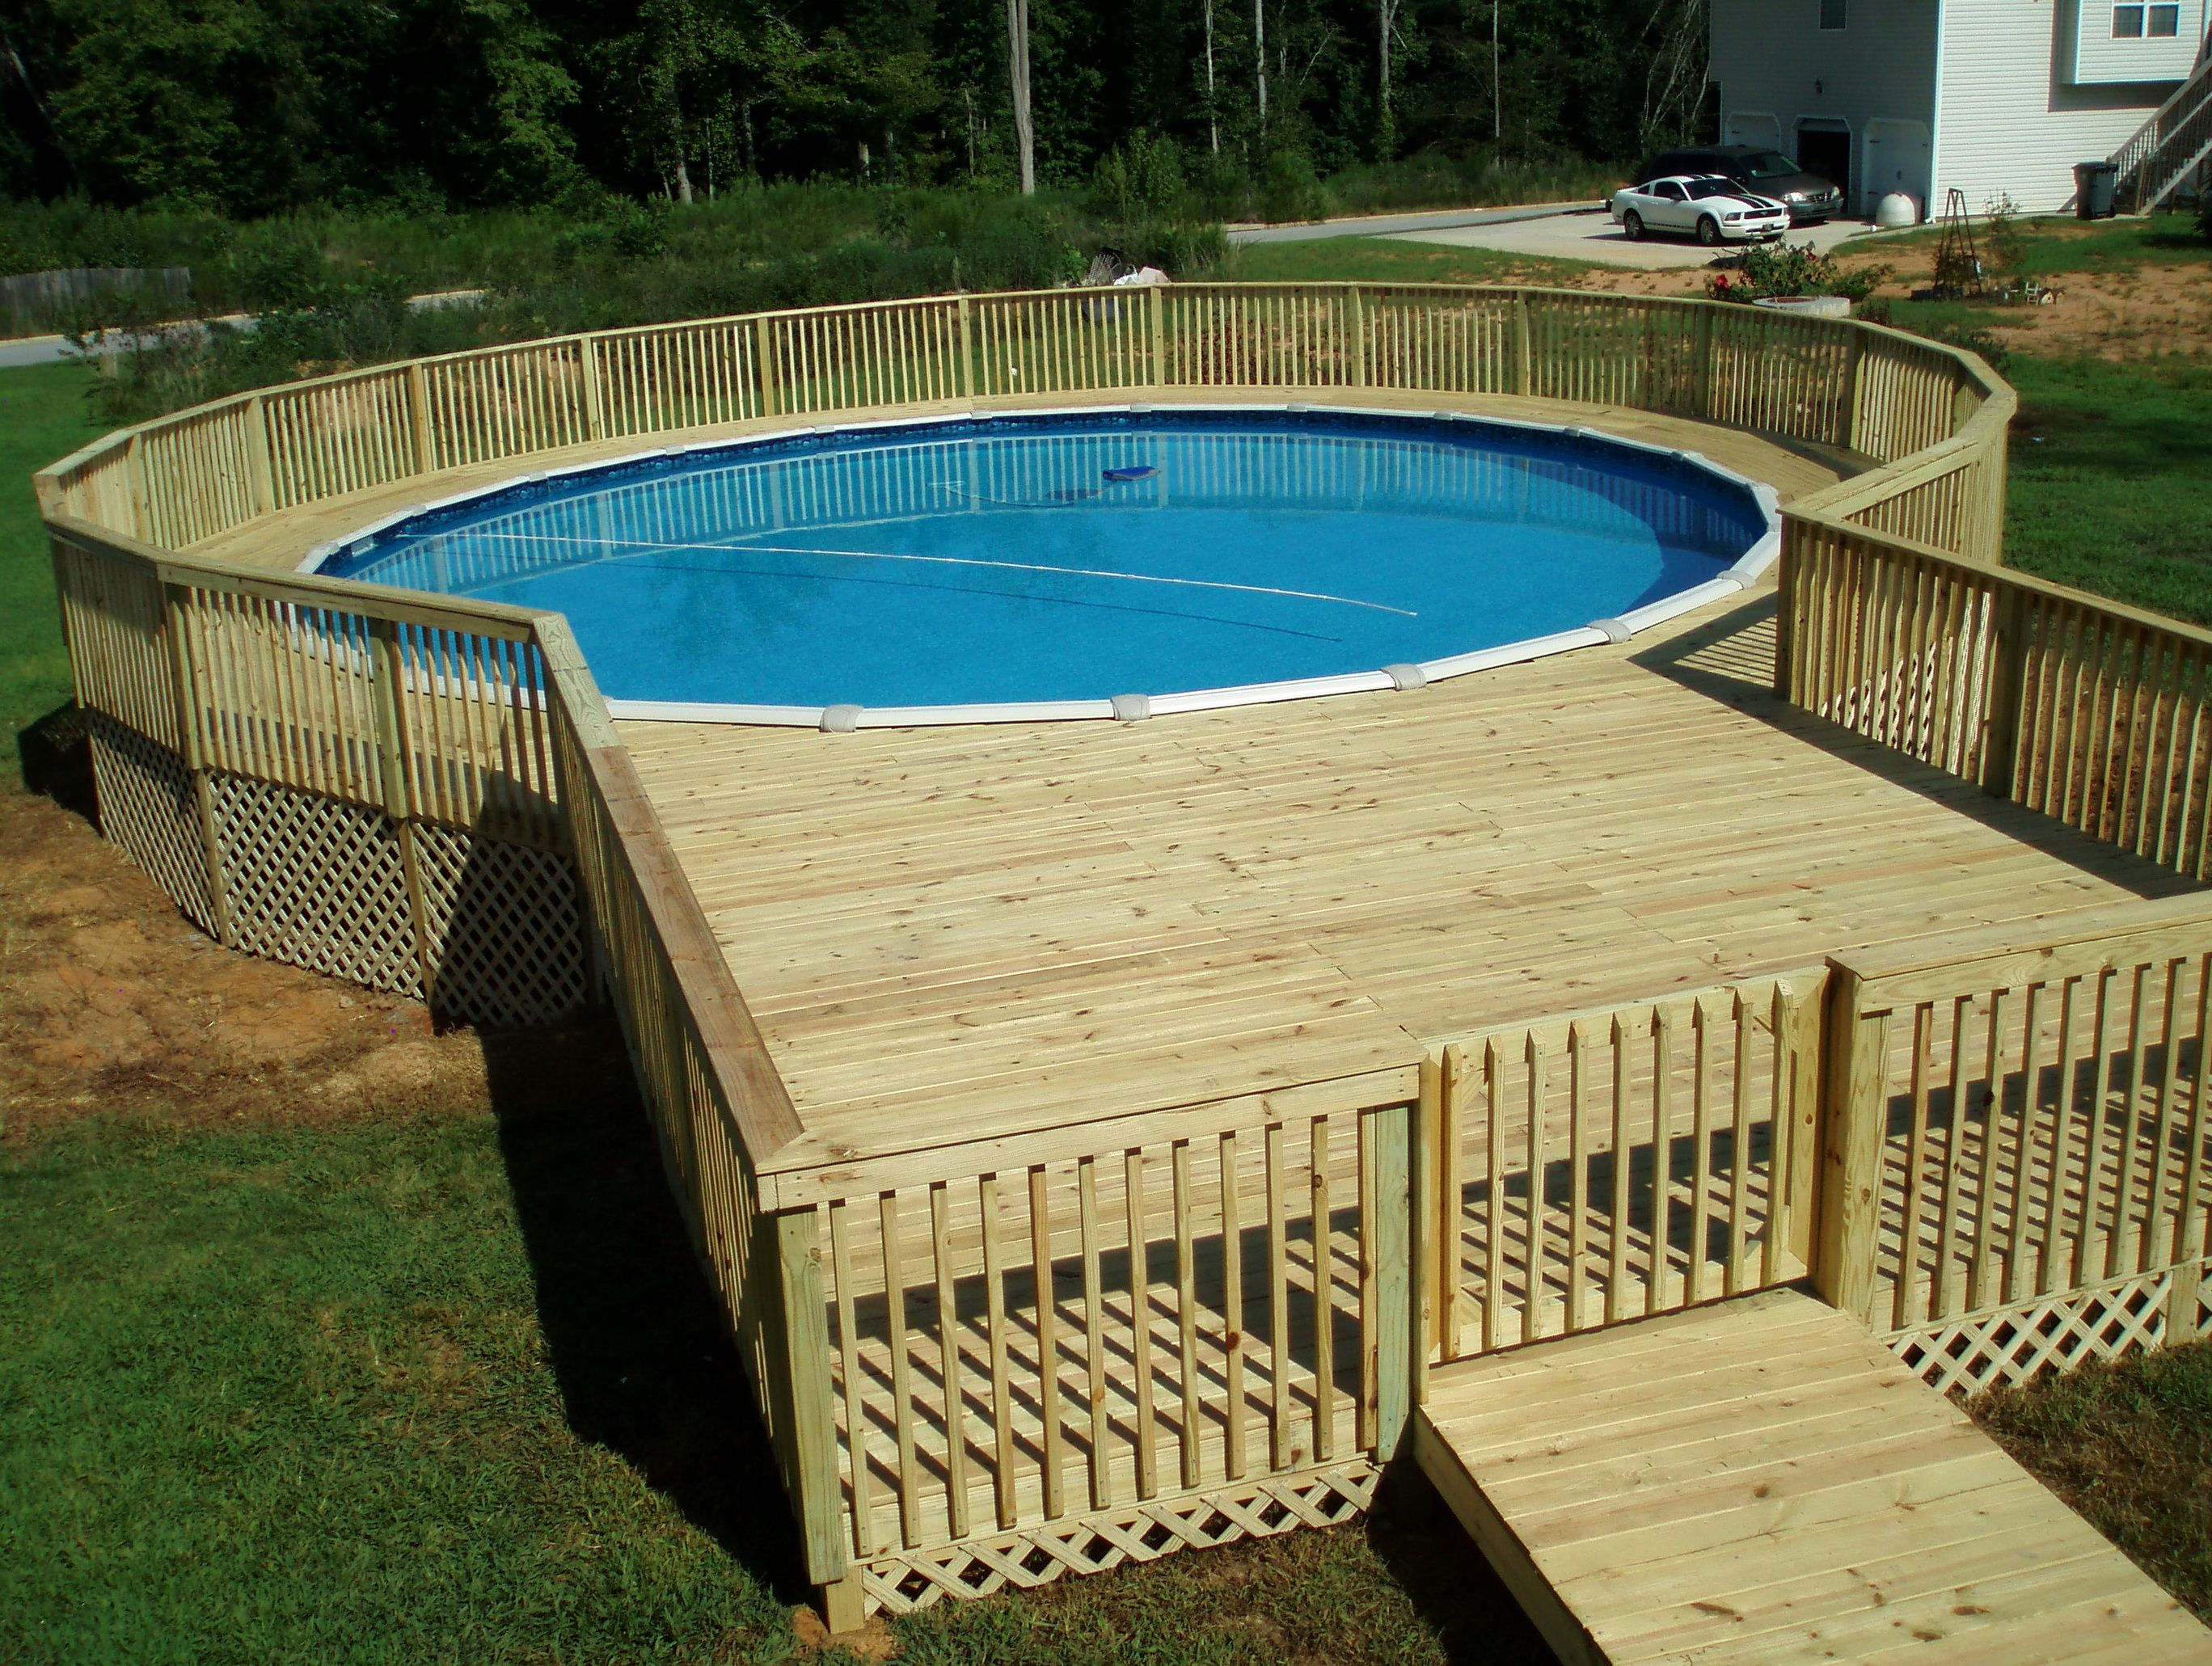 Pool Deck Plans Above Ground | decks | Pinterest | More Ground ...